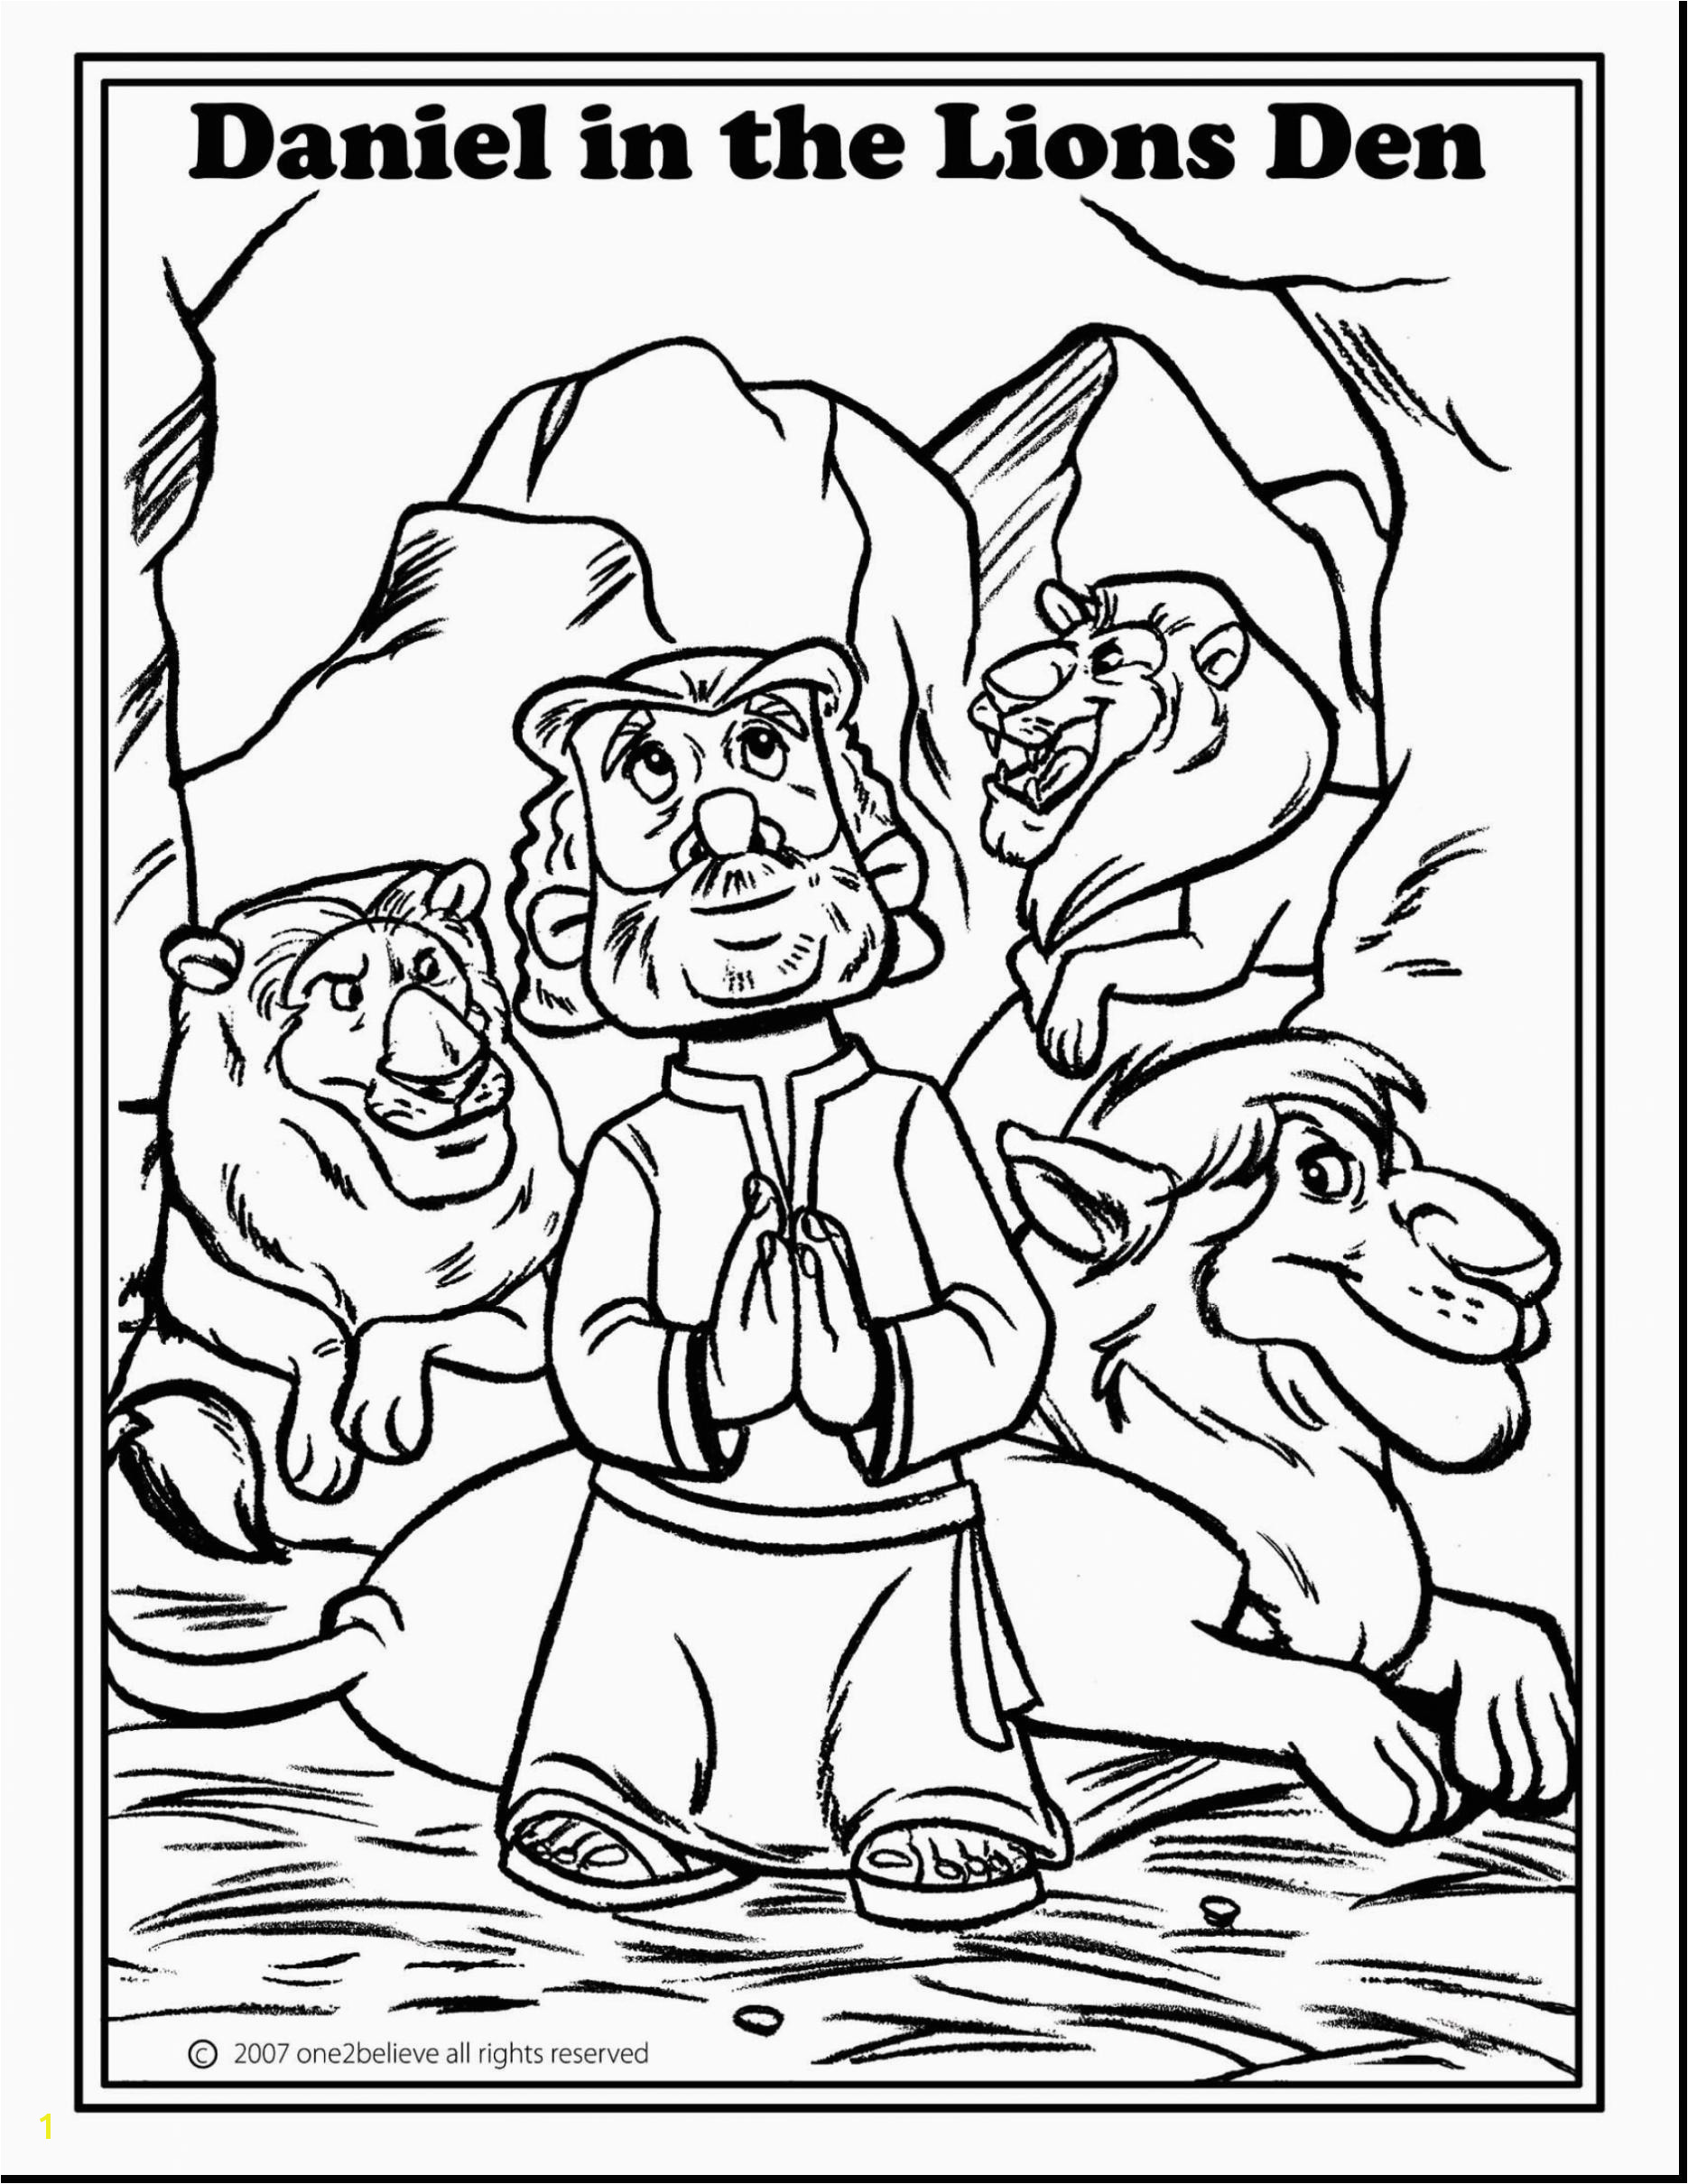 Daniel and the Lions Den Coloring Page Daniel and the Lions Den Coloring Pages